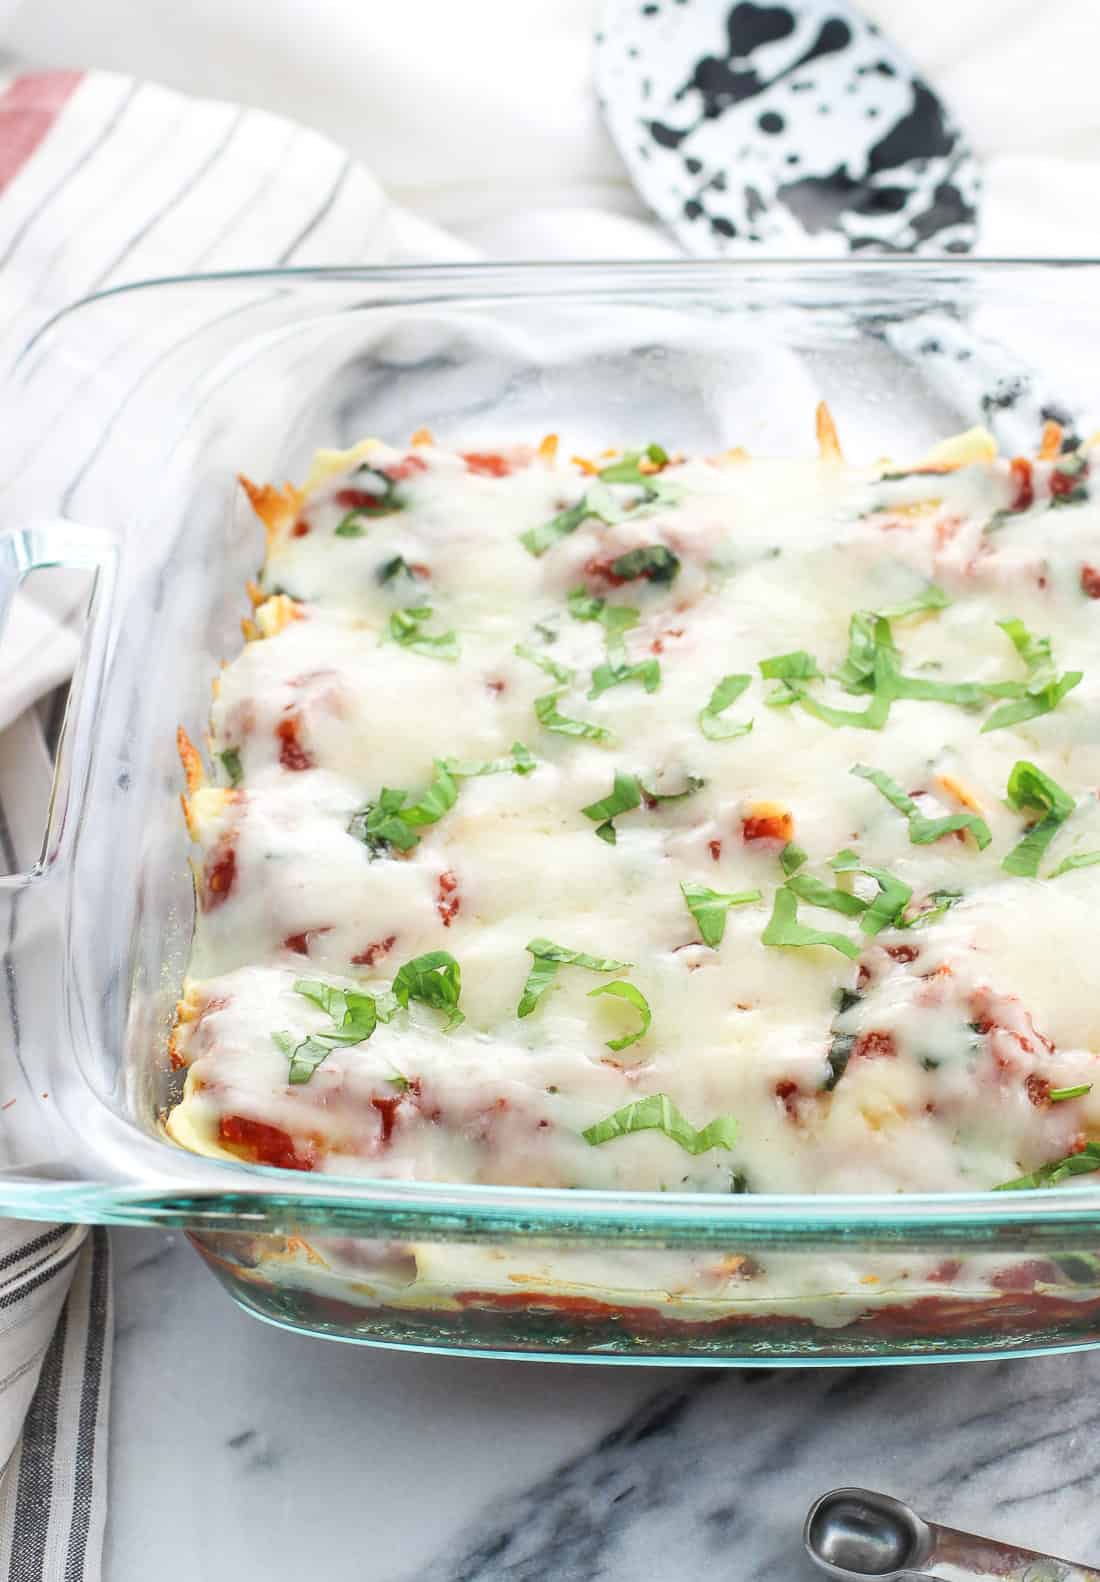 A glass baking dish filled with spinach, ravioli and marinara sauce, topped with melted mozzarella and fresh basil